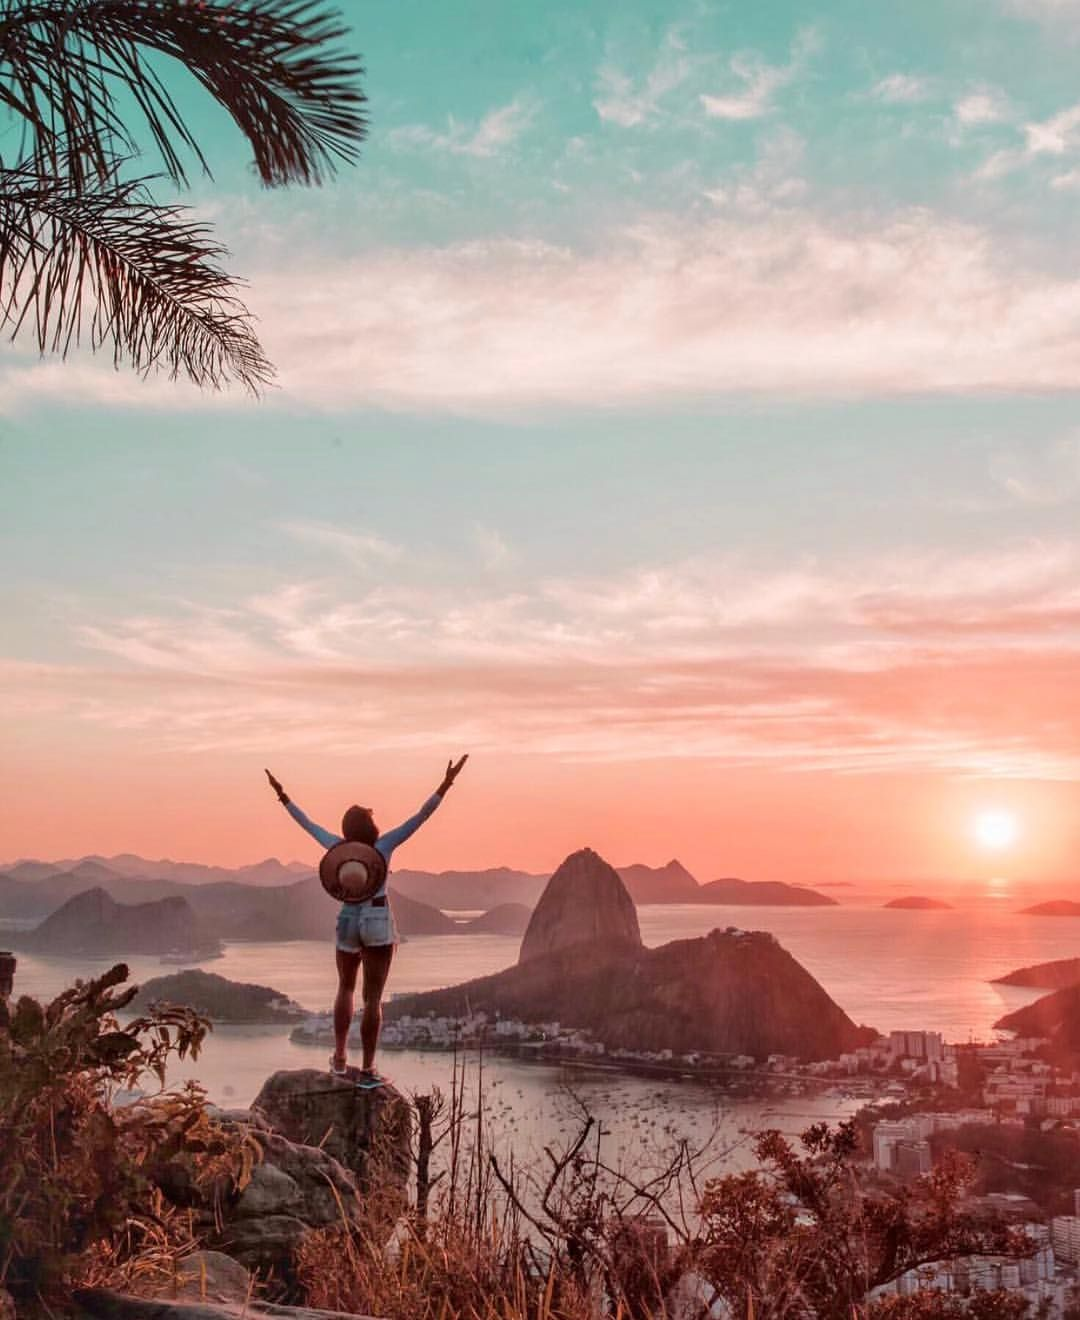 Give yourself time 🦋🌱 #tropicalwayoflife #brazil  #sunset Lee Garrett.marquess #style #shopping #styles #outfit #pretty #girl #girls #beauty #beautiful #me #cute #stylish #photooftheday #swag #dress #shoes #diy #design #fashion #Travel